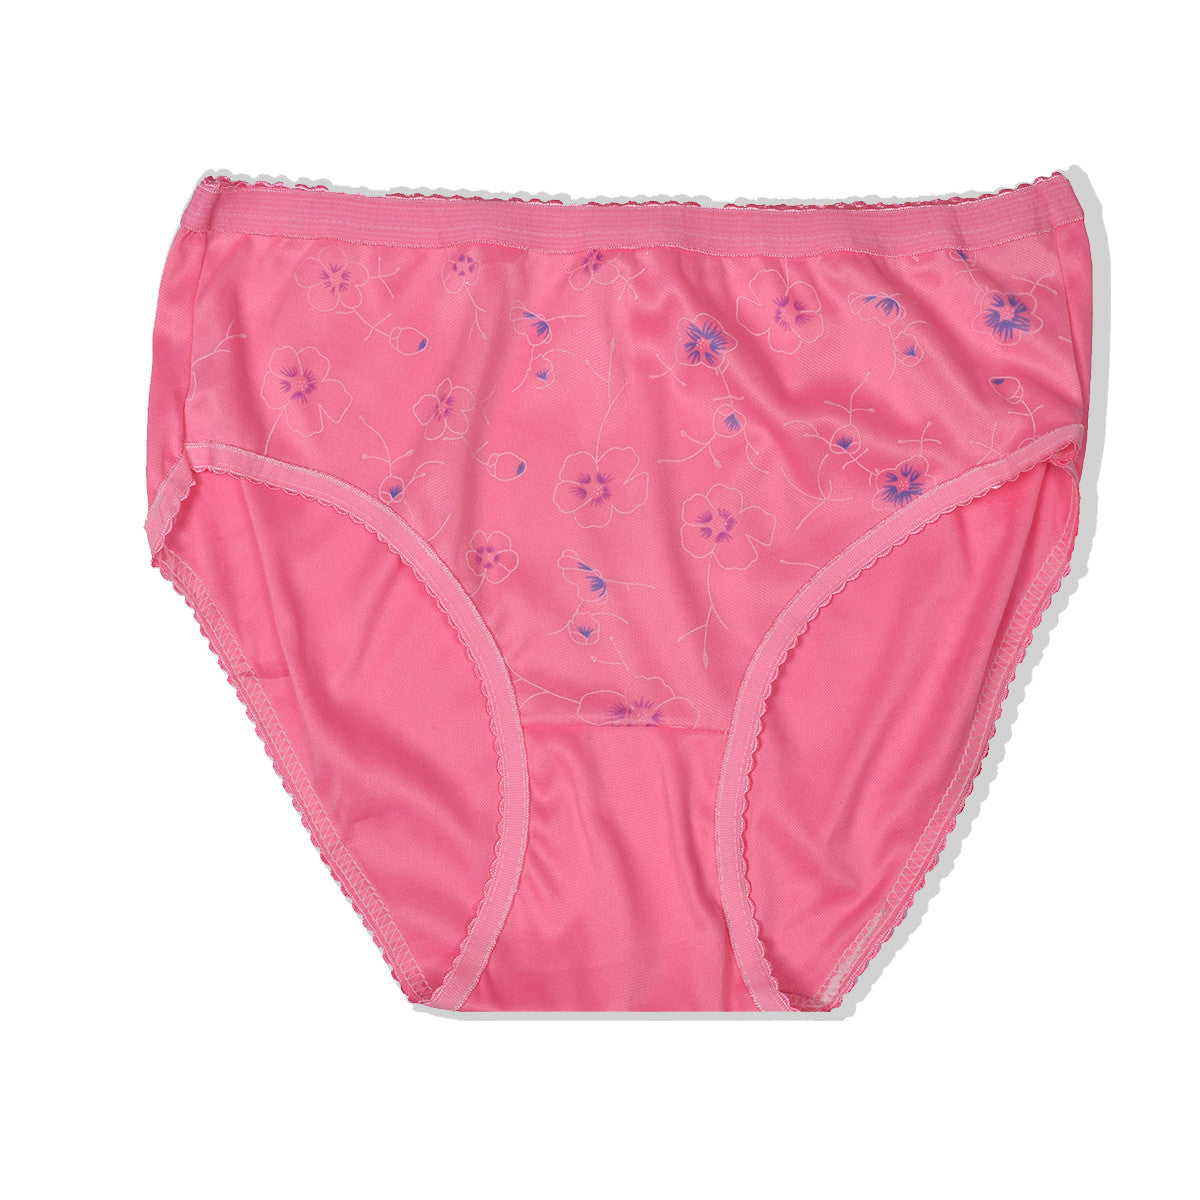 "Ladies "" Zara Essentials "" Stylish Underwear - Pink- ZUW09"